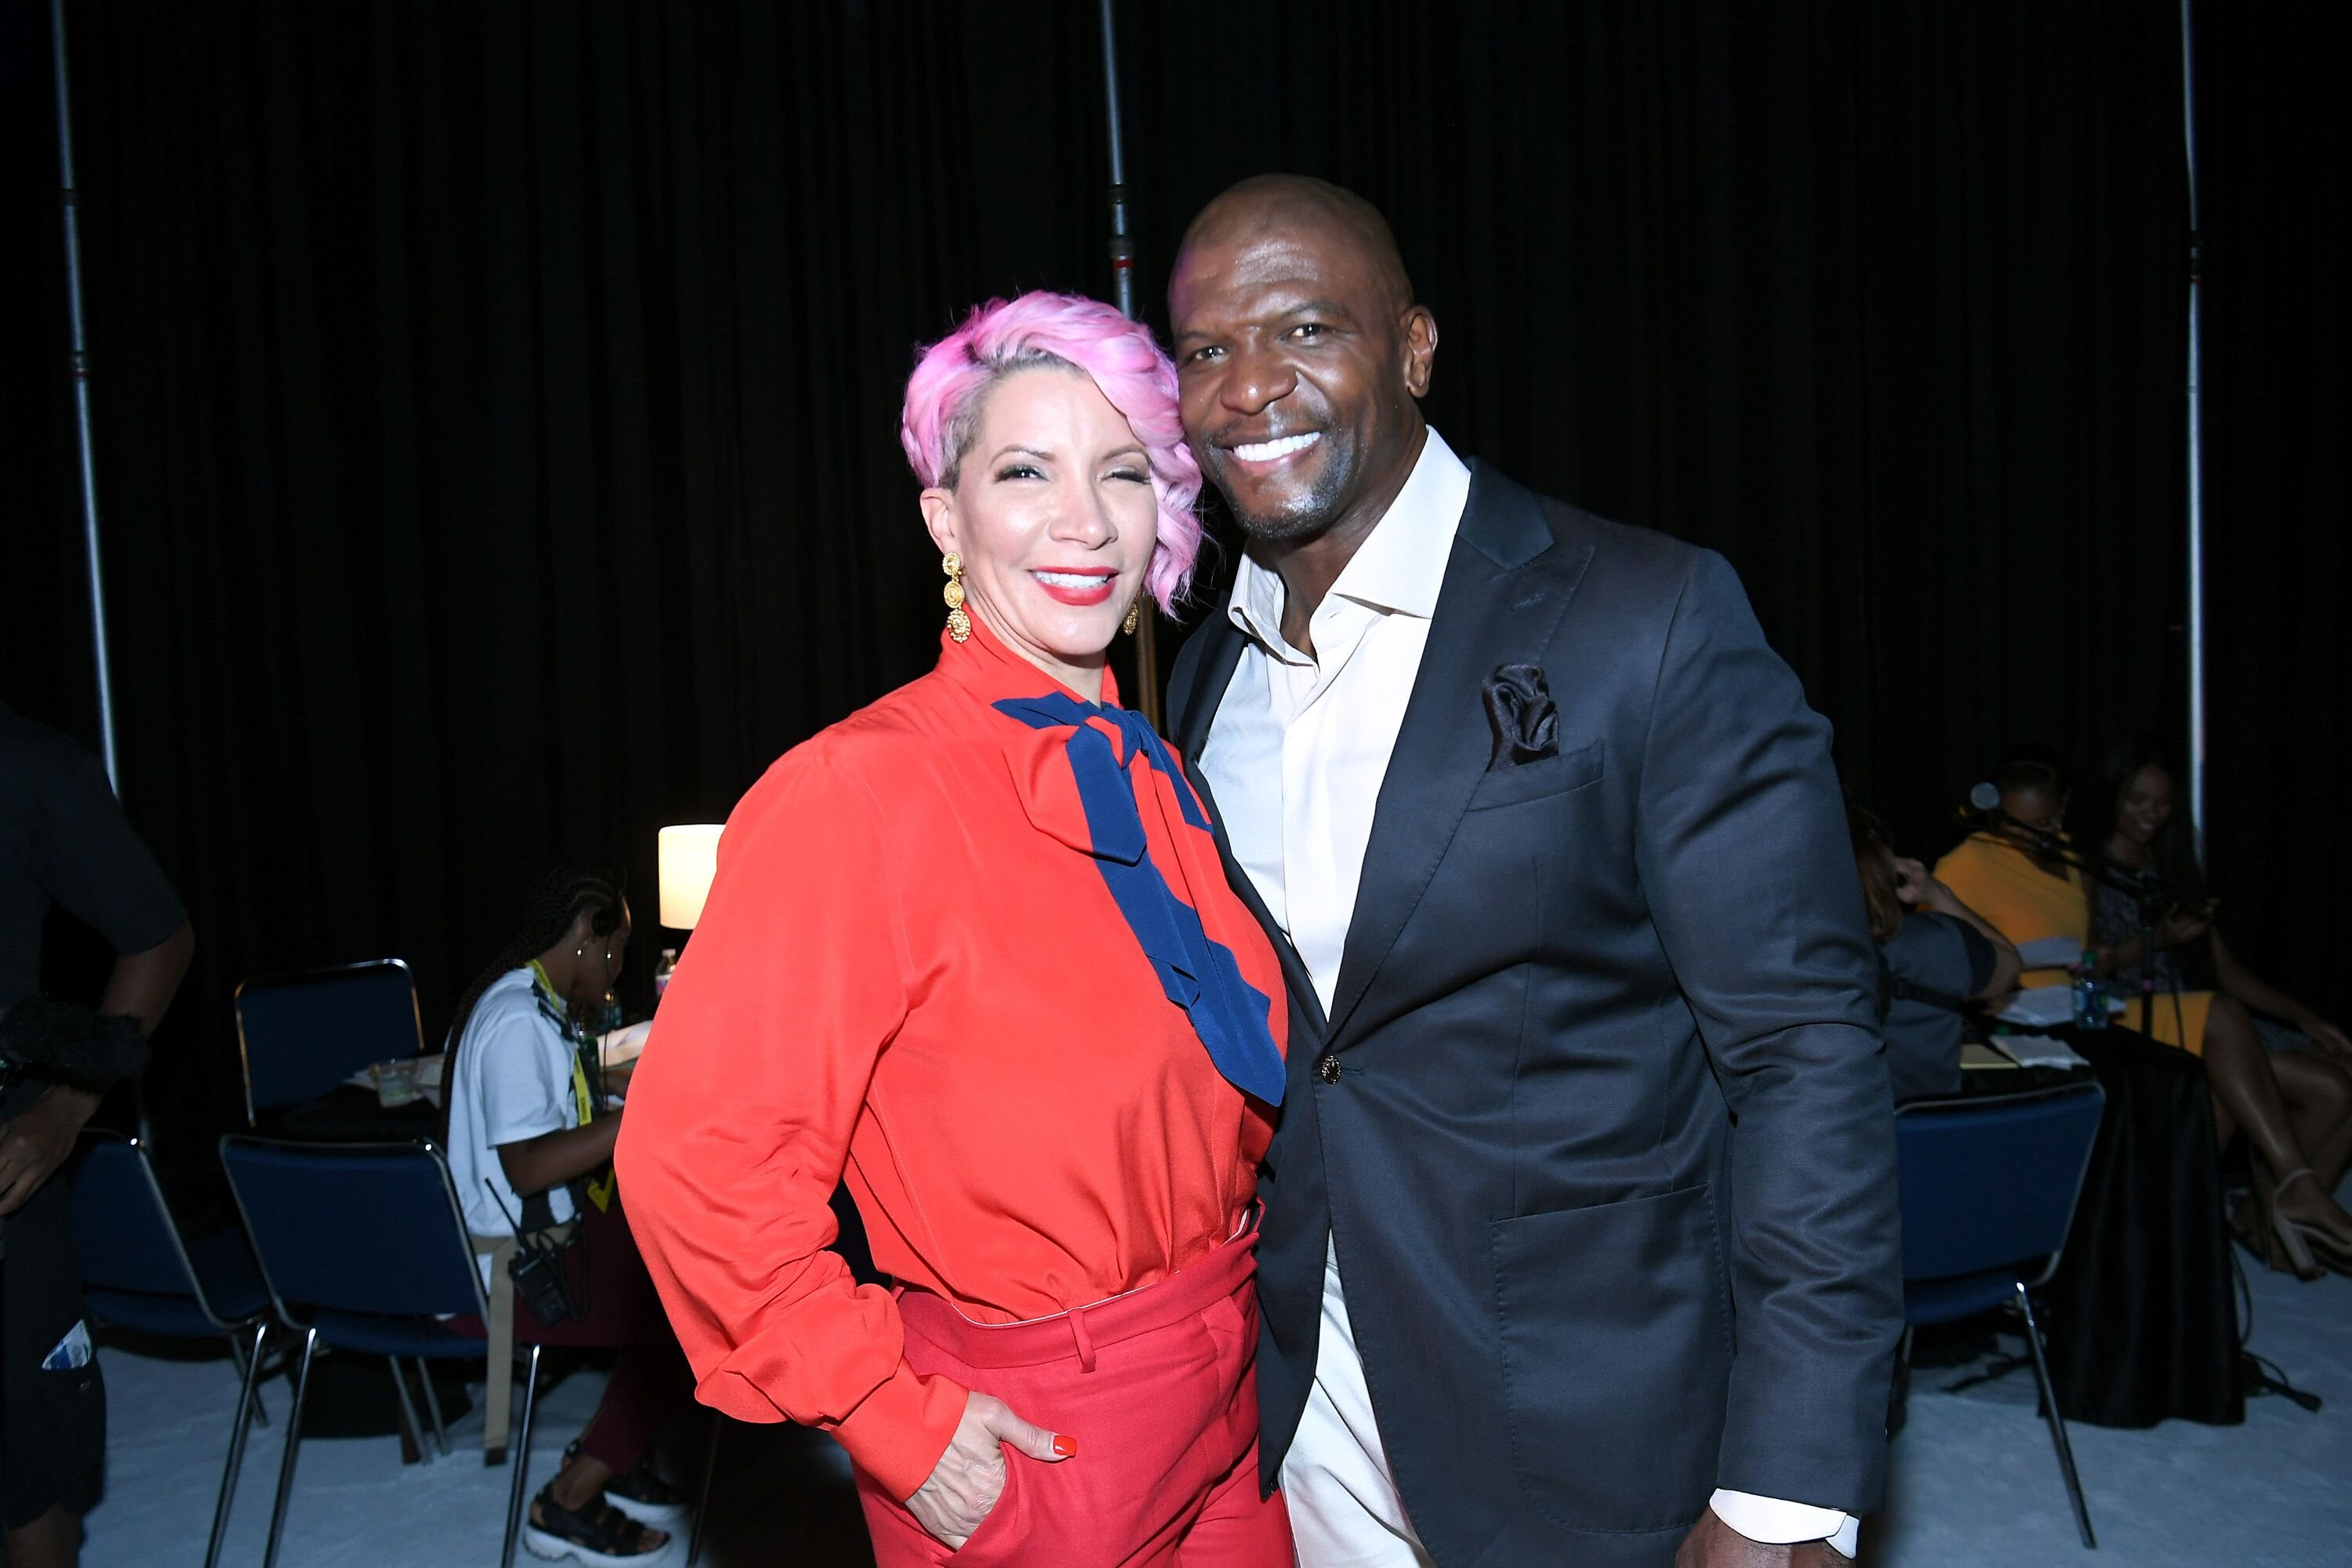 Rebecca King-Crews et Terry Crews dans les coulisses du Festival ESSENCE 2019. | Source : Getty Images